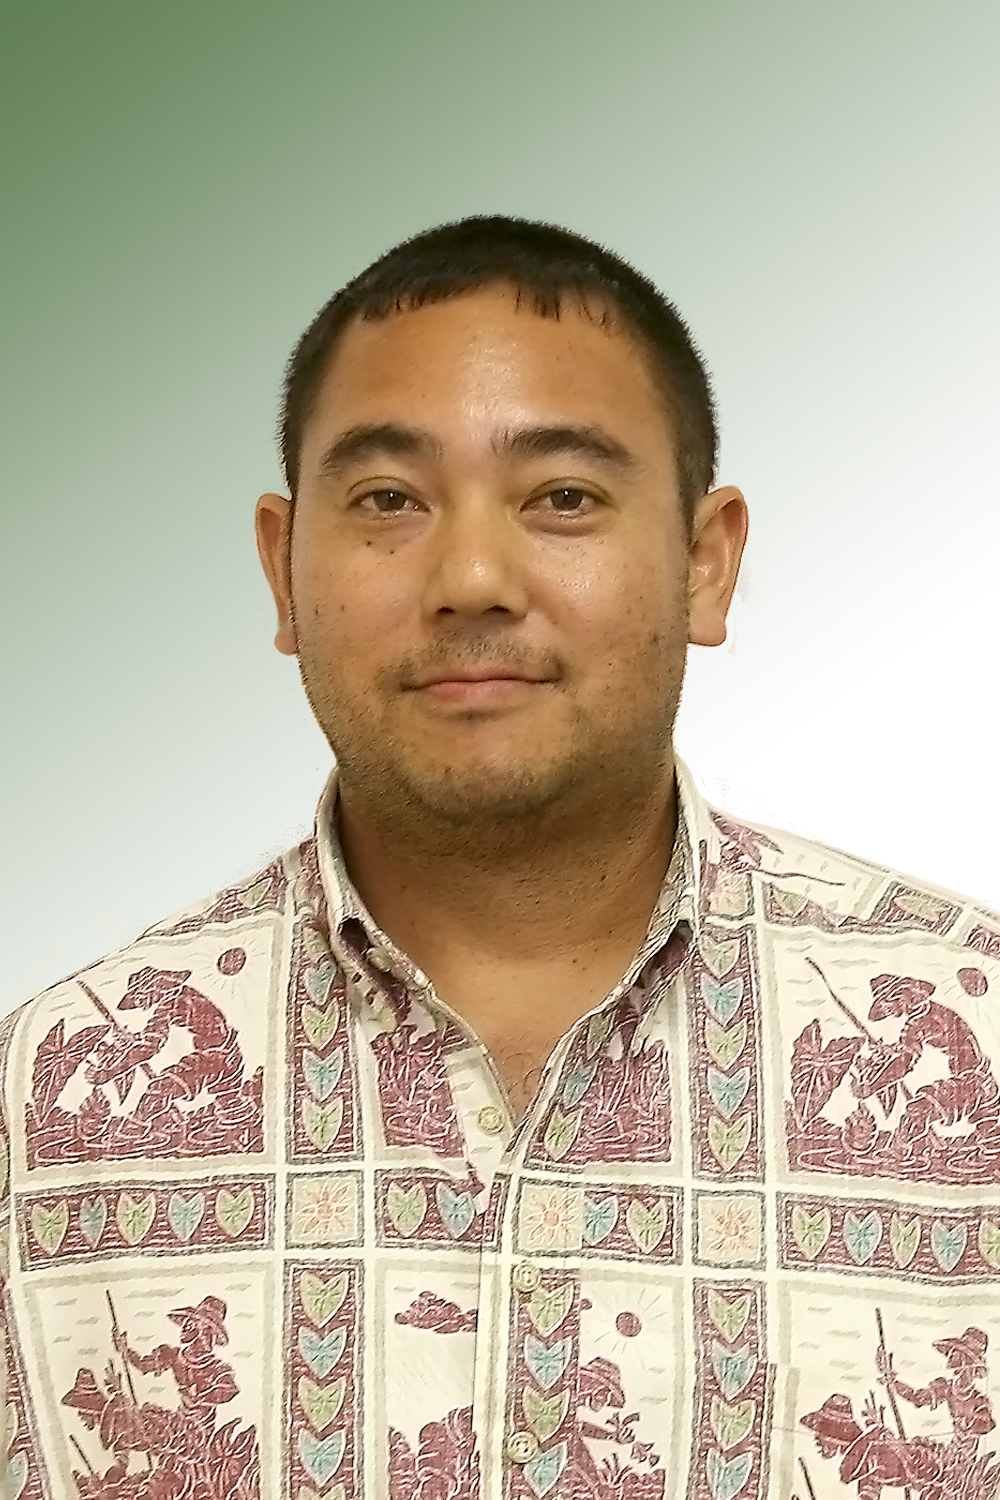 Professional Registration 1994   Electrical Engineering, Hawaii (8374) 1996 Electrical Engineering, Washington (15315) 2007   Electrical Engineering, Guam (1334) Professional Experience Jay Hashimoto has 18 years of experience with InSynergy Engineering, Inc.  In addition, he has eight years of experience with other electrical engineering consulting firms here in Honolulu and California.  Jay's experience includes the design of electrical systems for commercial, industrial, residential, institutional, and mechanical facilities for both private and public sector projects which included medium voltage power, lighting, telephone and data systems. In addition he has conducted power system studies which include site review, masterplanning, code compliance and future expansions for facilities.